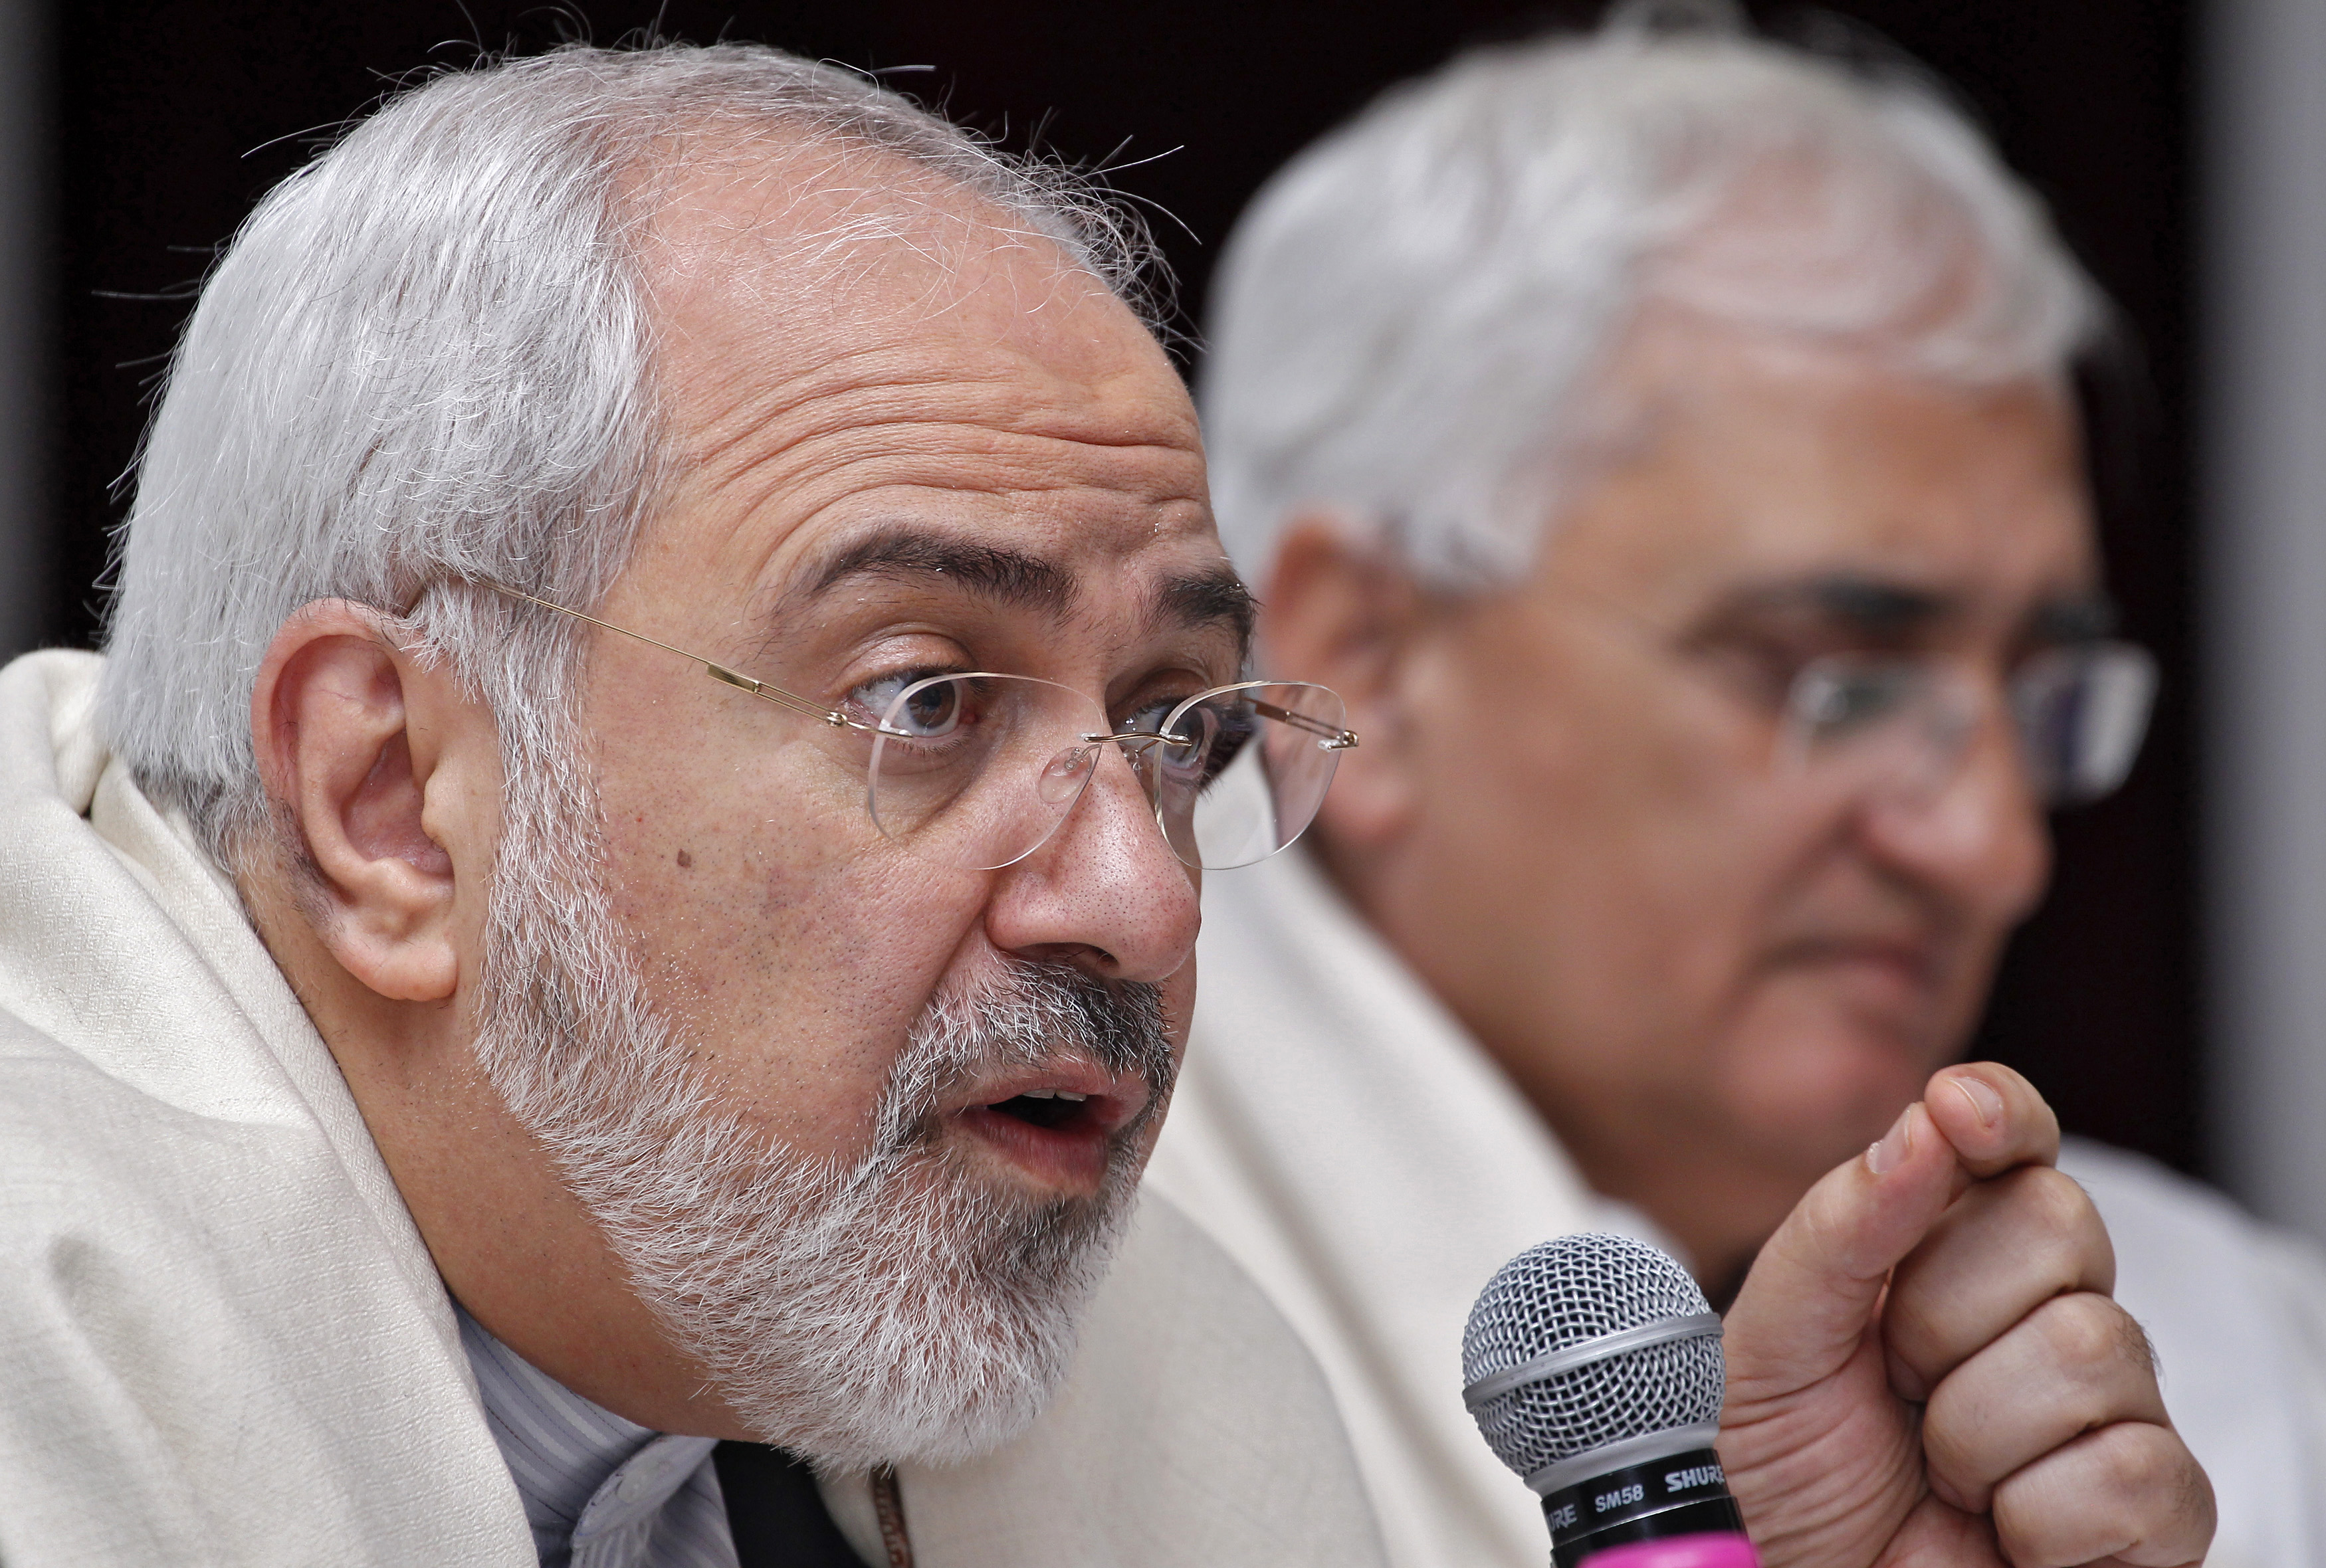 Iran's Foreign Minister Mohammad Javad Zarif speaks as his Indian counterpart Salman Khurshid watches during a lecture themed  Iran's Foreign Policy - Towards Stability in West Asia  organized by the Observer Research Foundation in New Delhi on February 27, 2014.